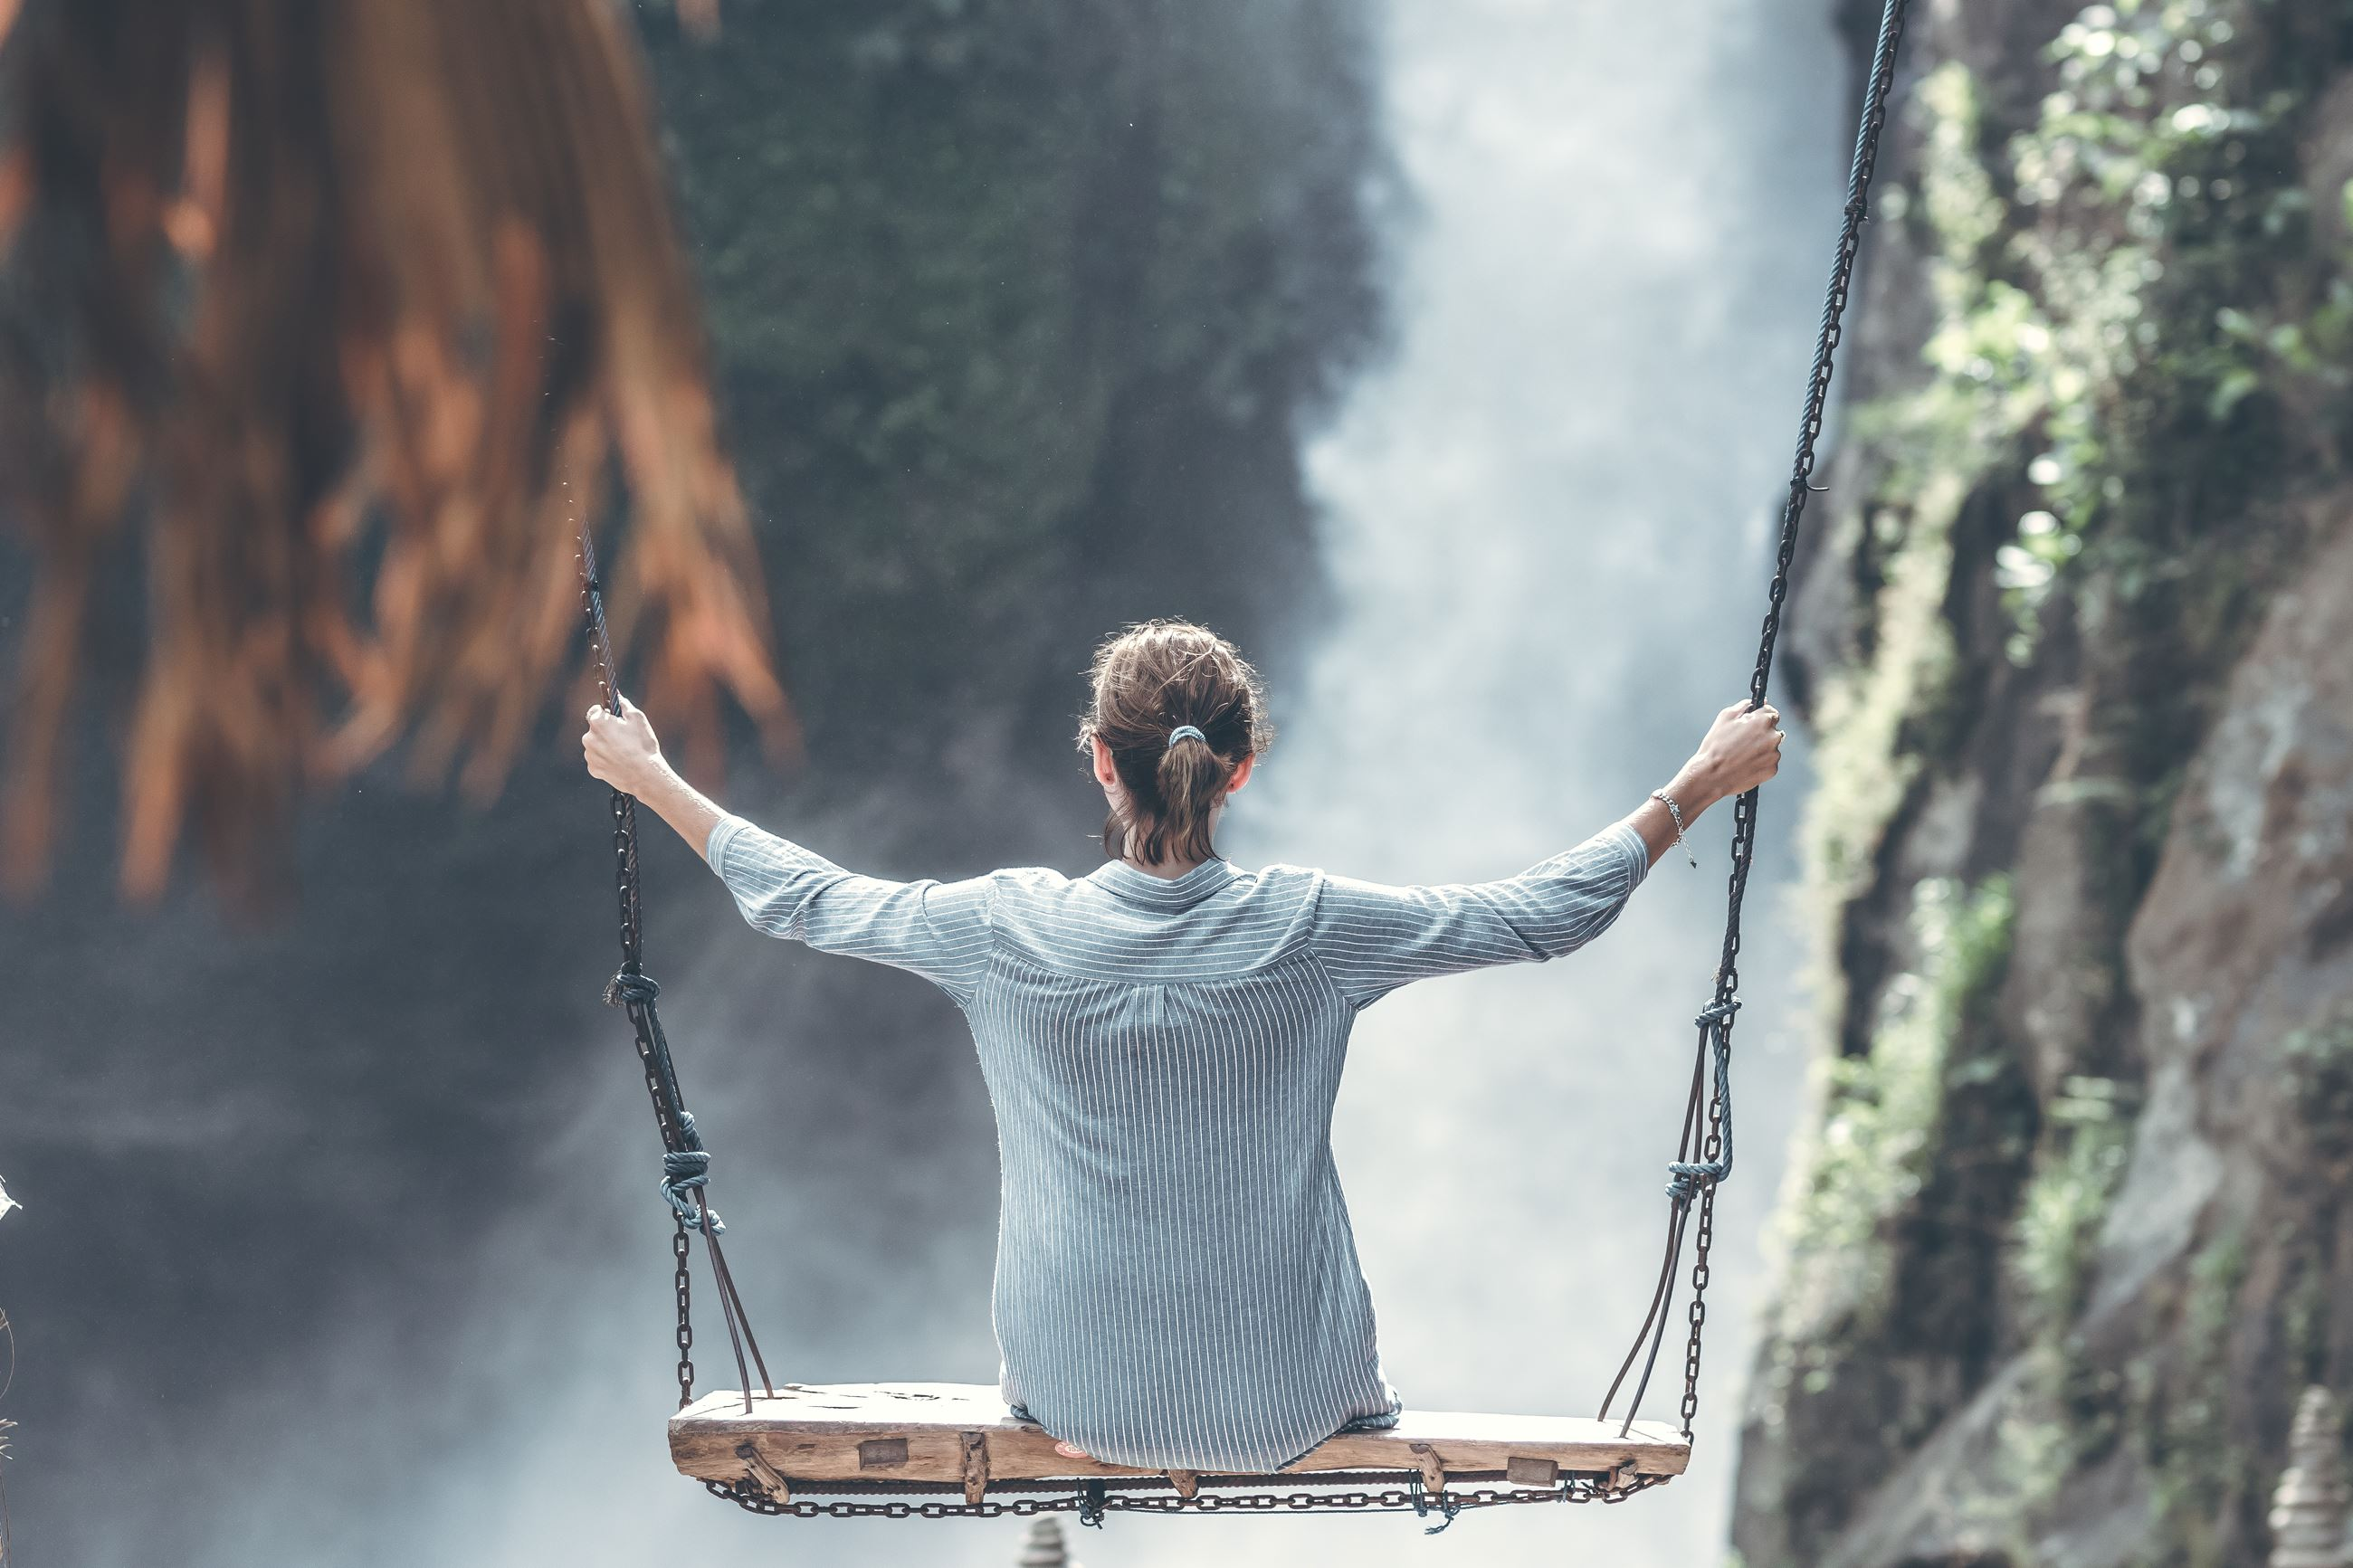 Canva - Woman Riding Big Swing in Front of Waterfalls (1)